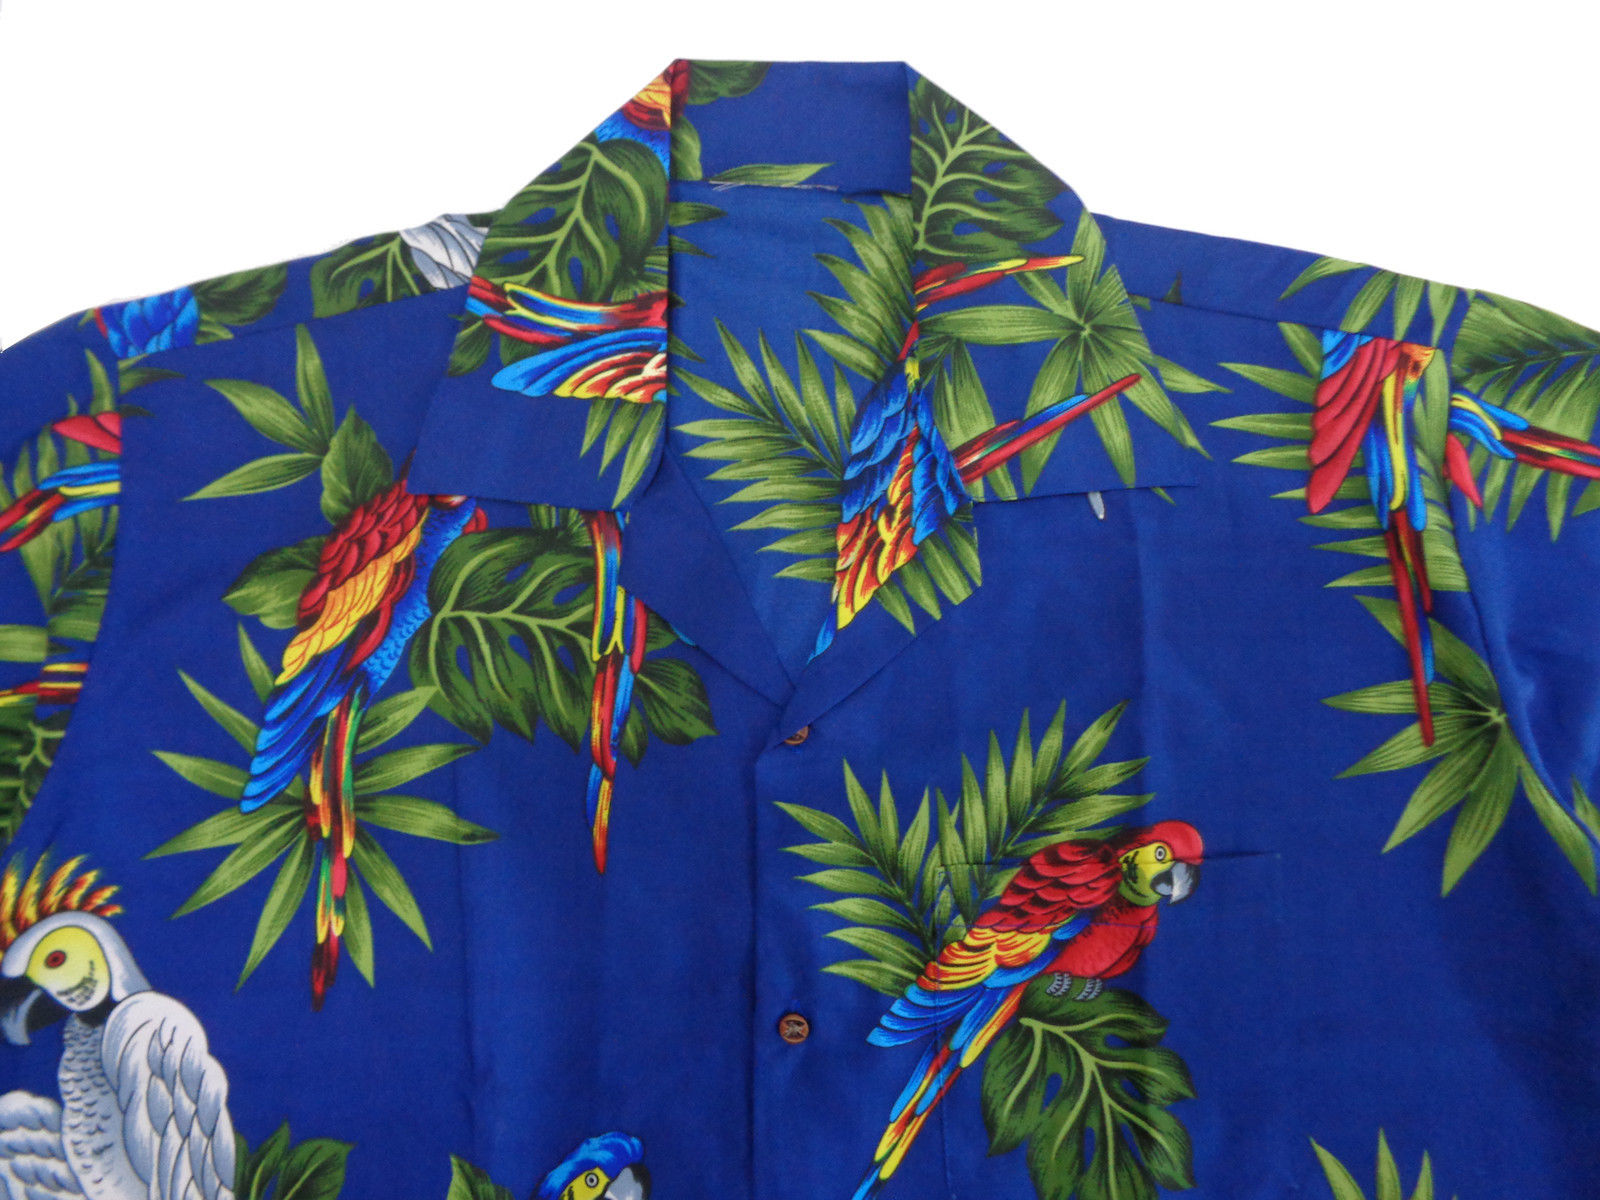 Hawaiian-Shirt-Mens-Parrot-Toucan-Print-Beach-Aloha-Party-Holiday-Camp thumbnail 9